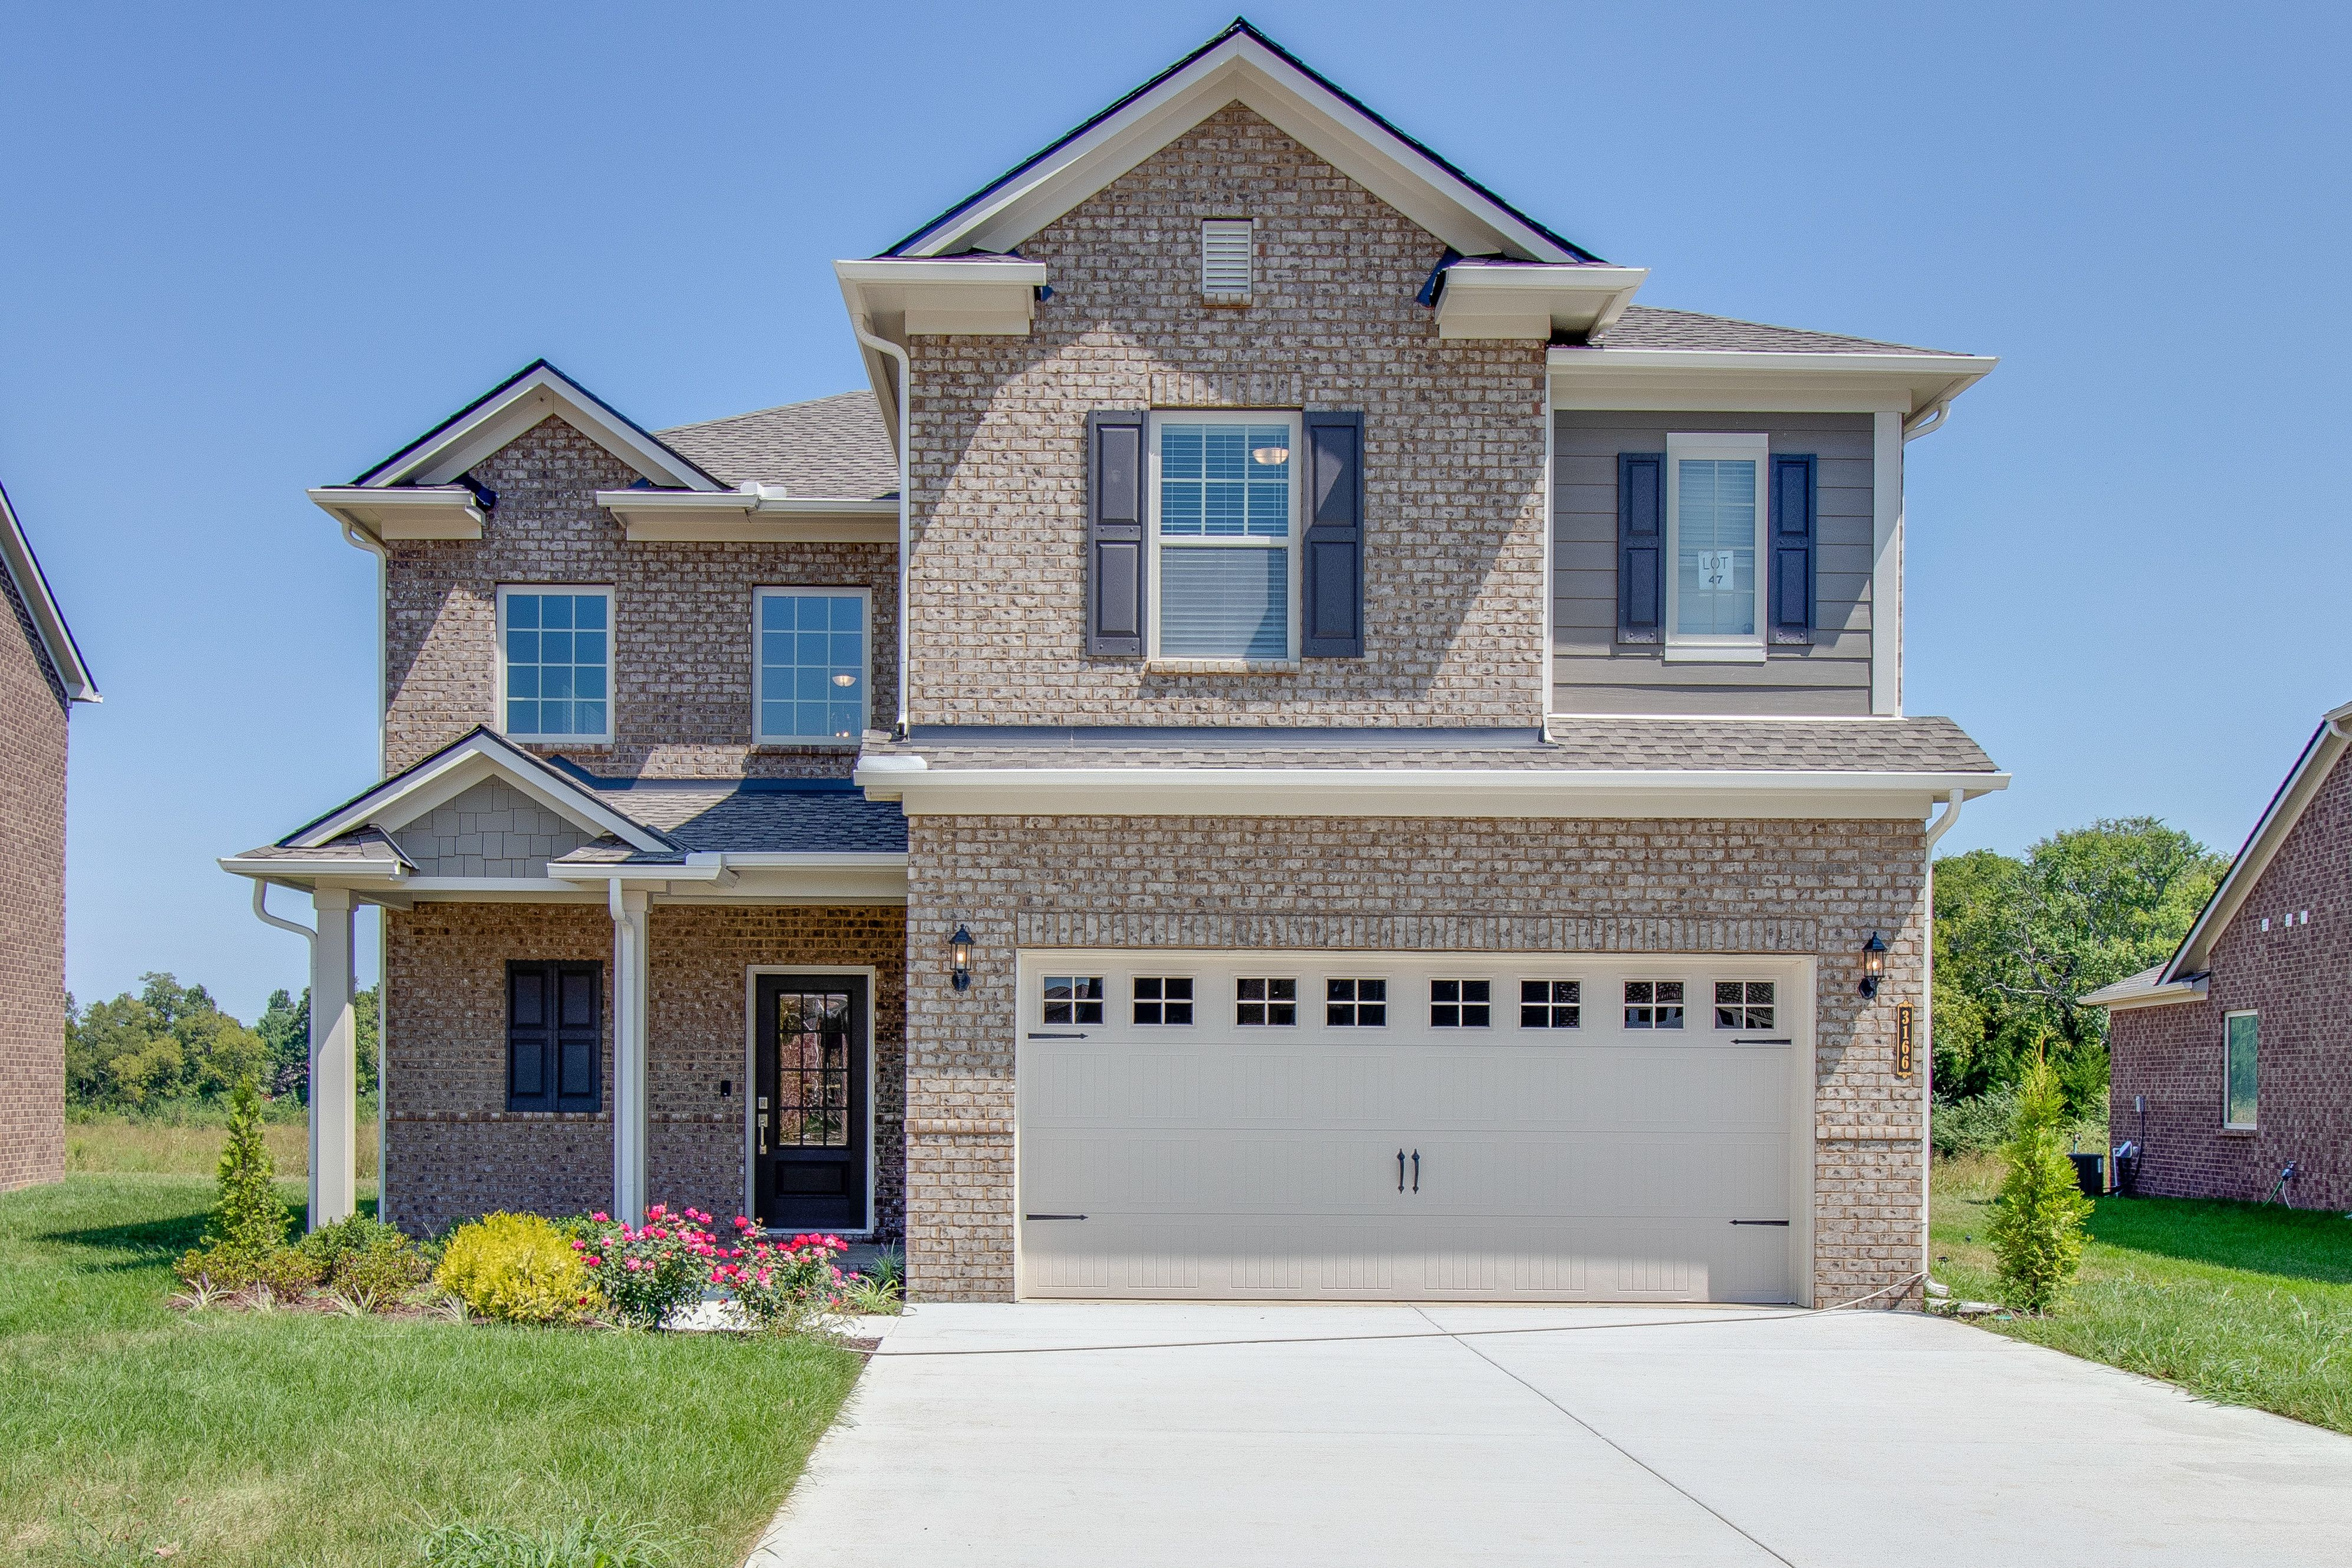 At Over 2 500 Square Feet The Rosemary Is The Largest Plan Of The Classic Collection At Valleybrook I New House Plans New Home Communities Modern Floor Plans